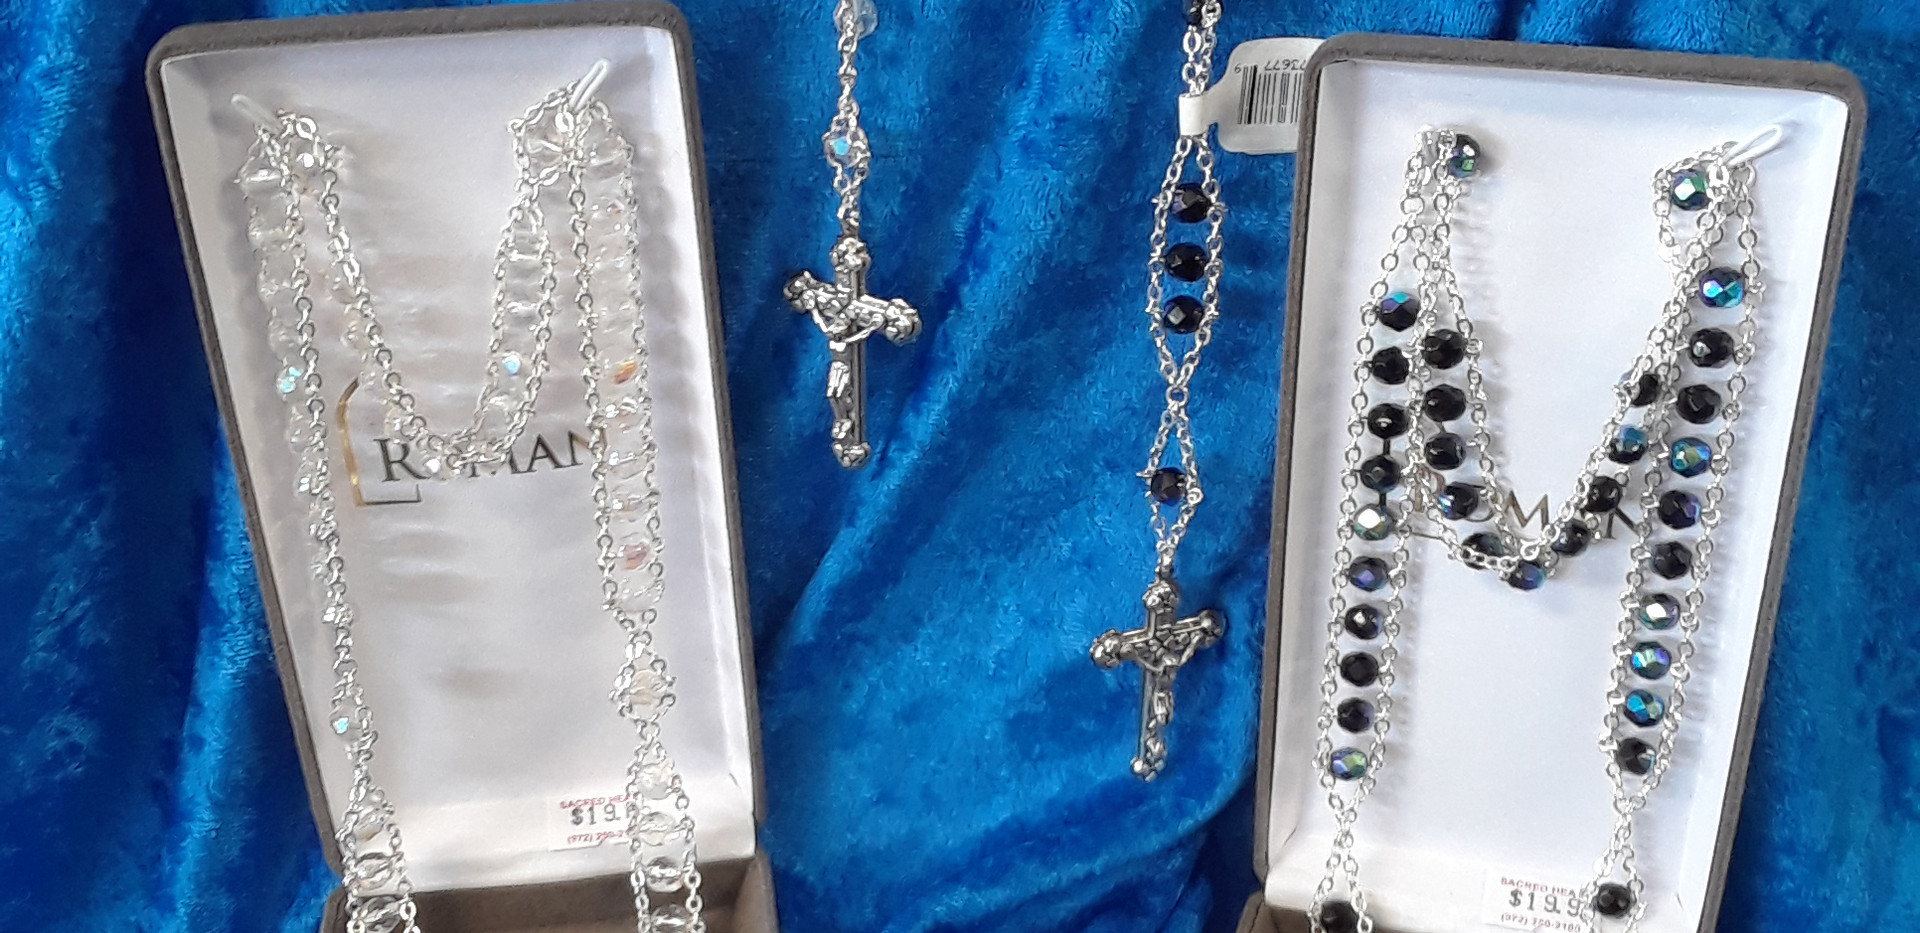 New ladder rosaries